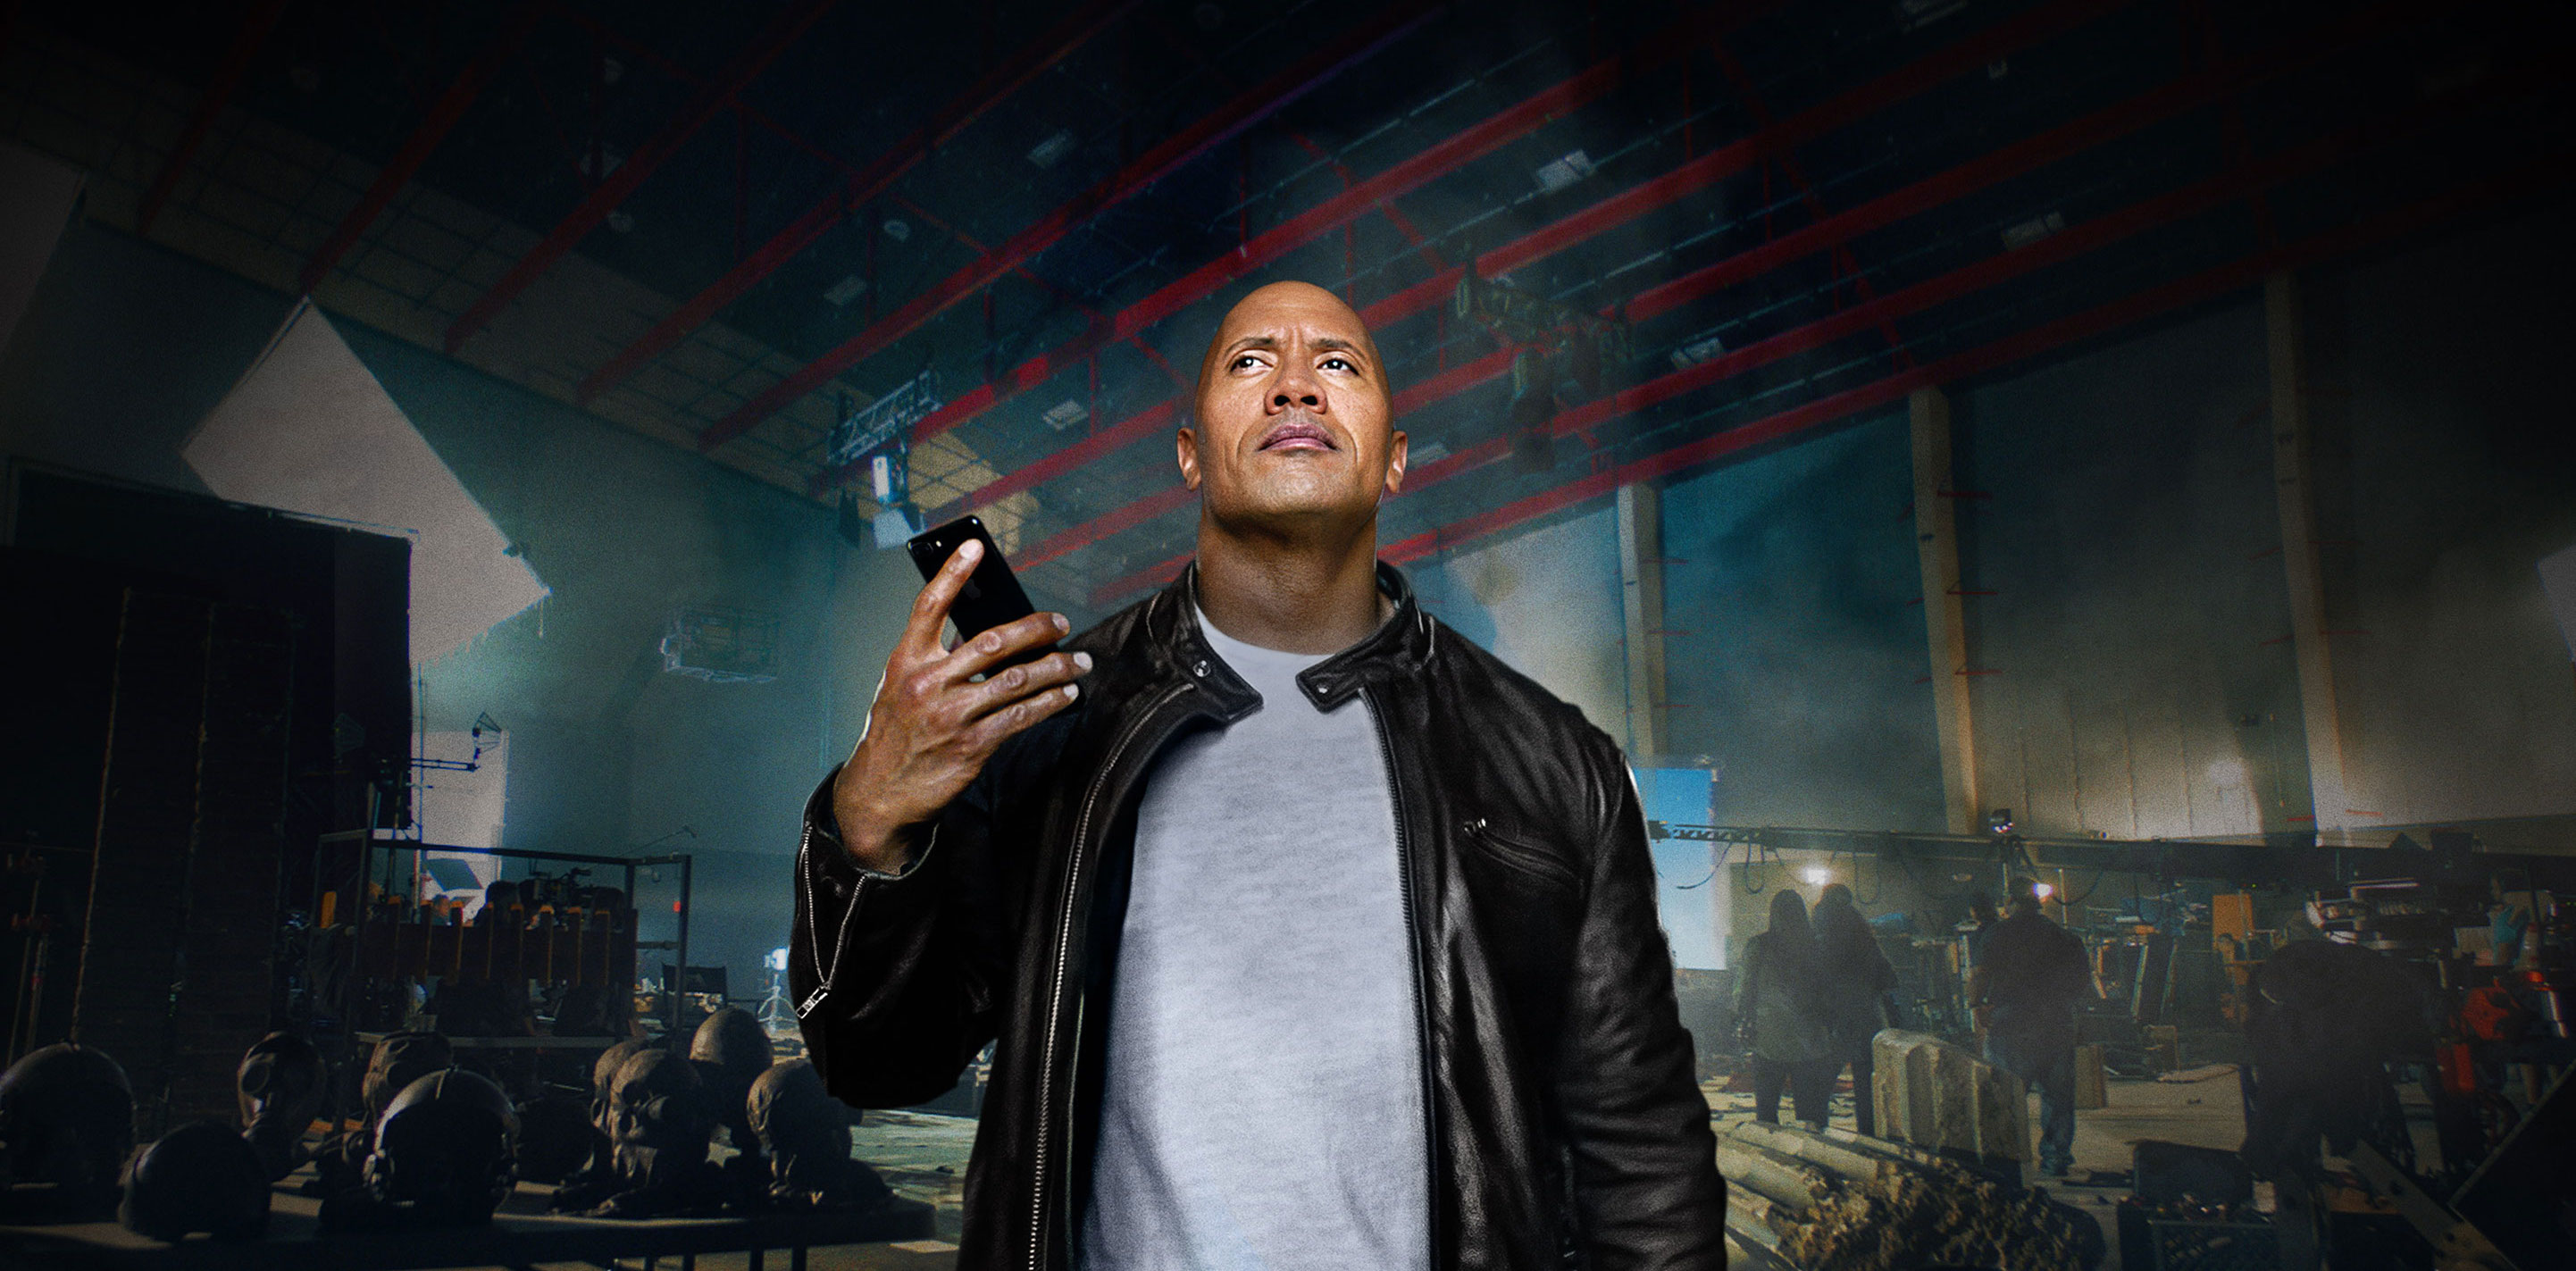 A screenshot from a TV spot featuring Dwayne Johnson aka The Rock using Siri to dominate his day